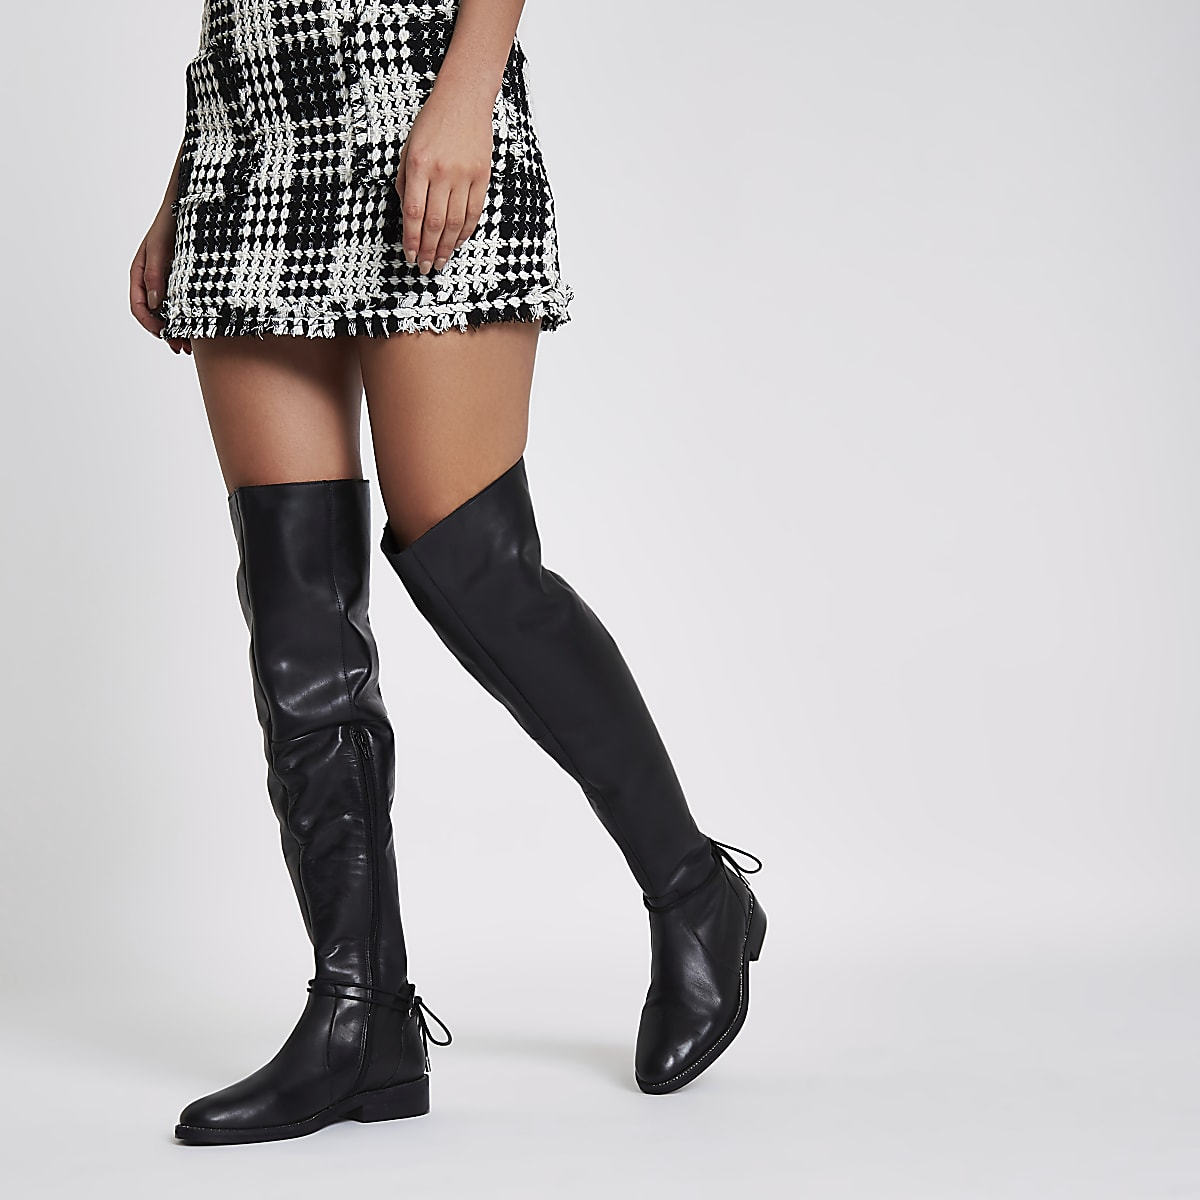 b60e99dece5 Black leather over the knee flat boots - Boots - Shoes   Boots - women